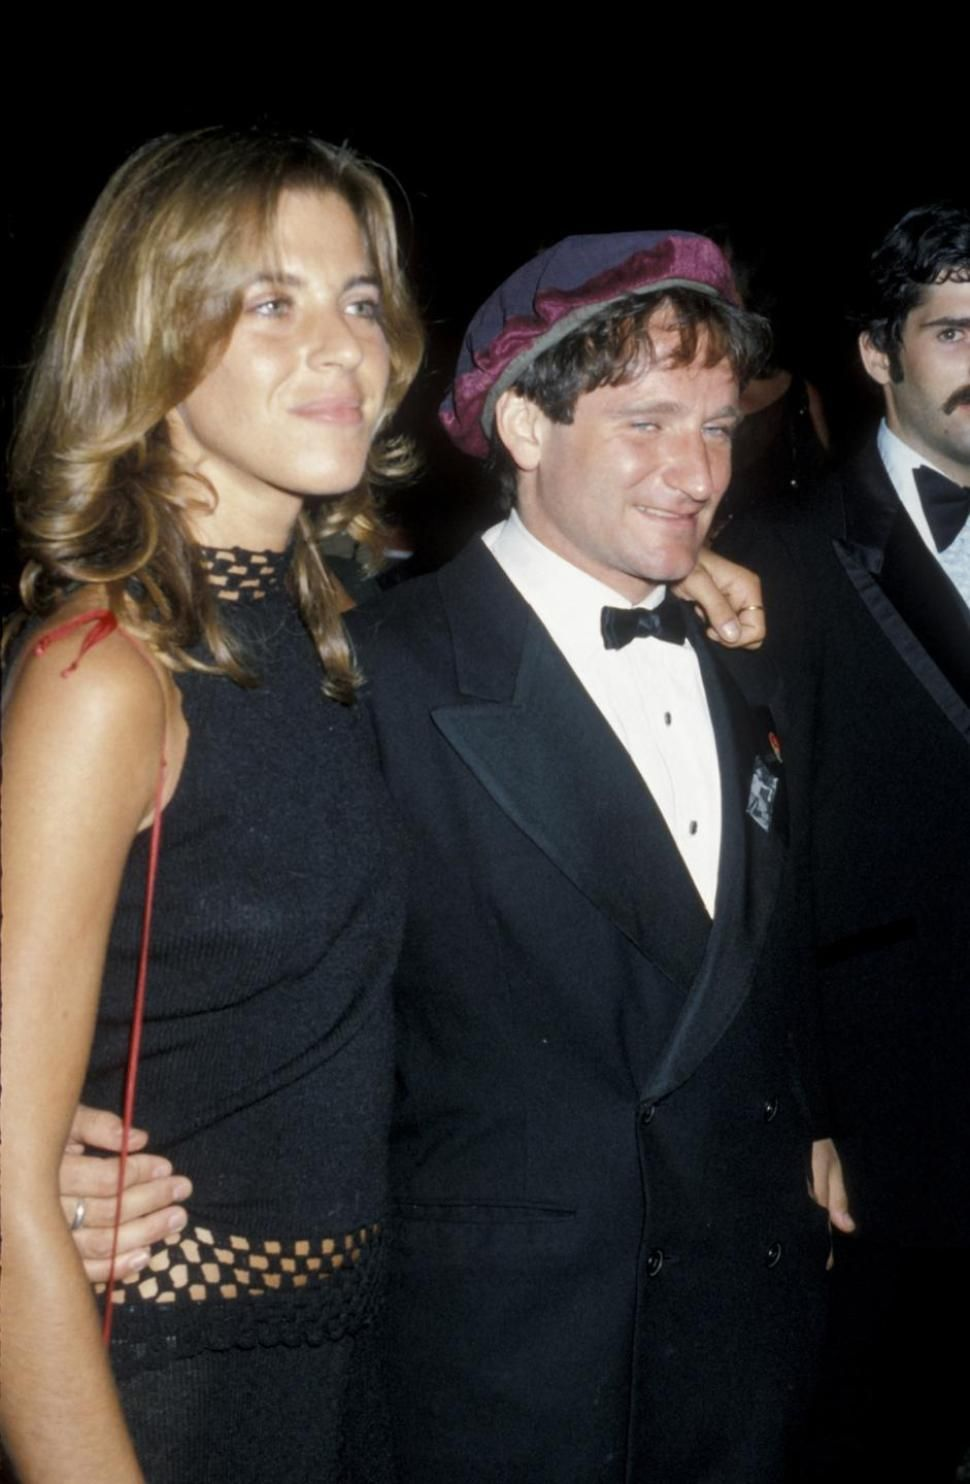 Robin Williams First Wife Valerie Velardi Google Search Robin Williams Wife Robin Williams Robin Valerie velardi opened up about her relationship with williams for the first time since his death four years ago, in the documentary robin williams: pinterest